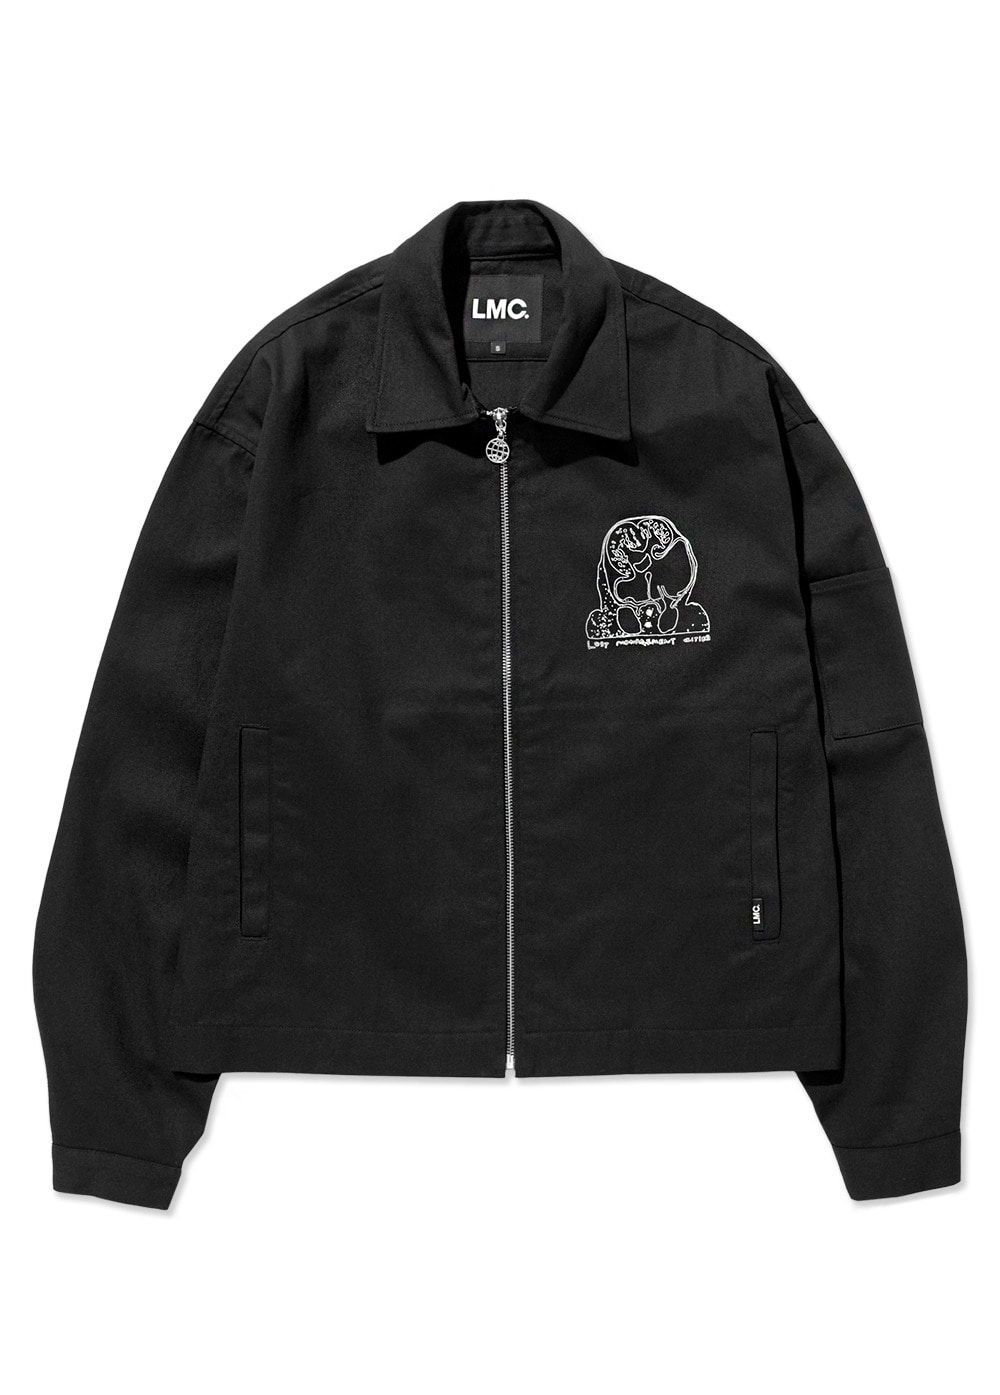 LMC HBCT WORK JACKET black